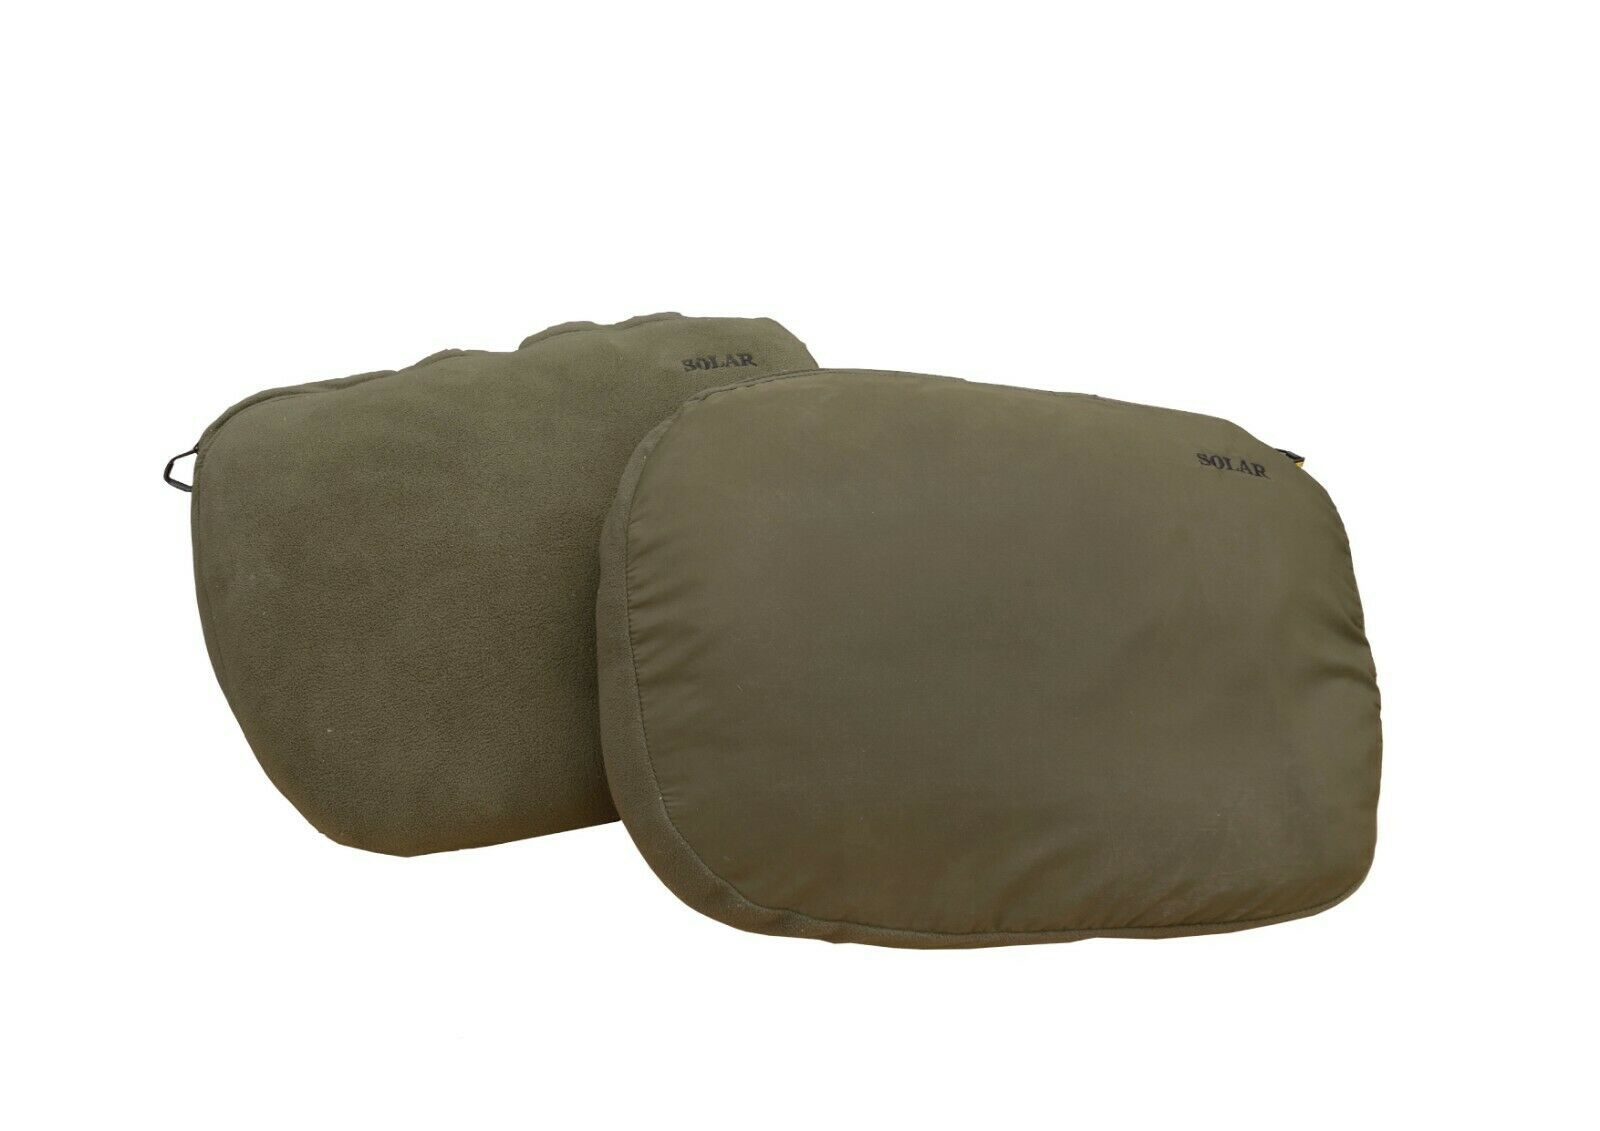 Solar SP Pillow NEW Carp Fishing Double Sided Padded Fishing Pillow - AC06